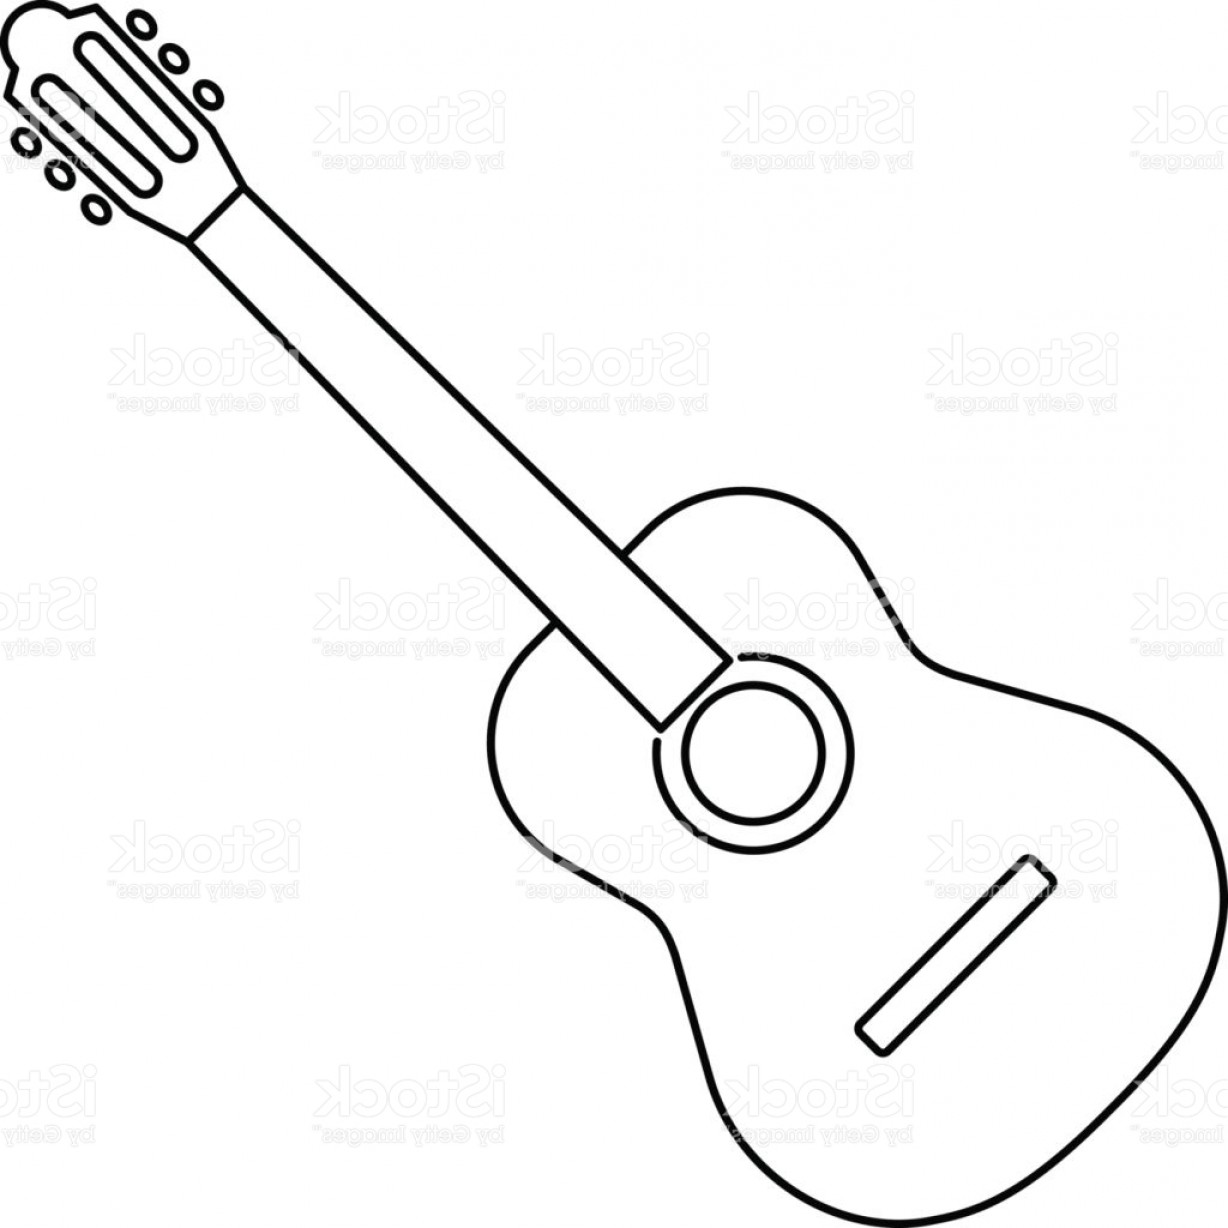 Guitar clipart simple. Acoustic line drawing at